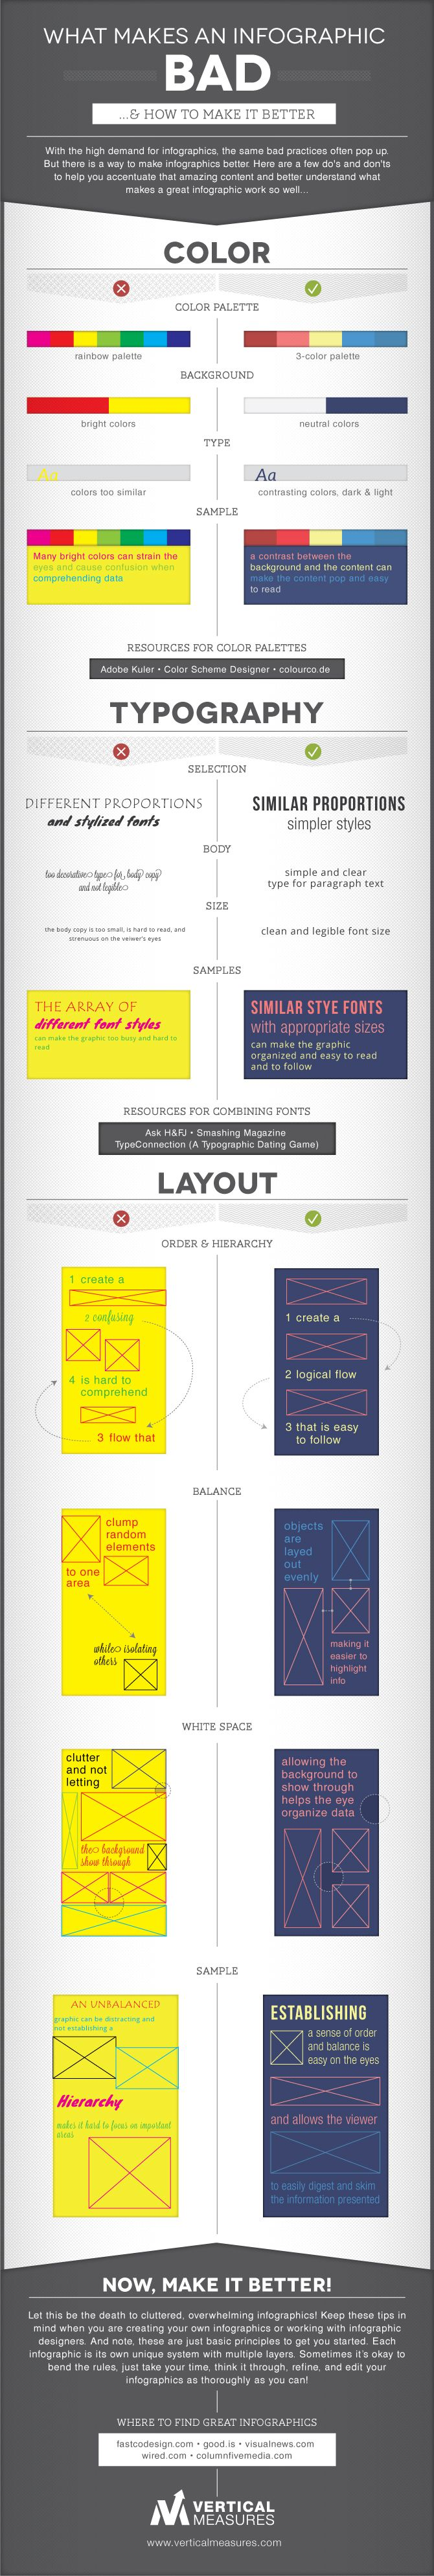 How a Badly Designed Infographic Can Kill Its Purpose and How to Get it Right! - Infographic